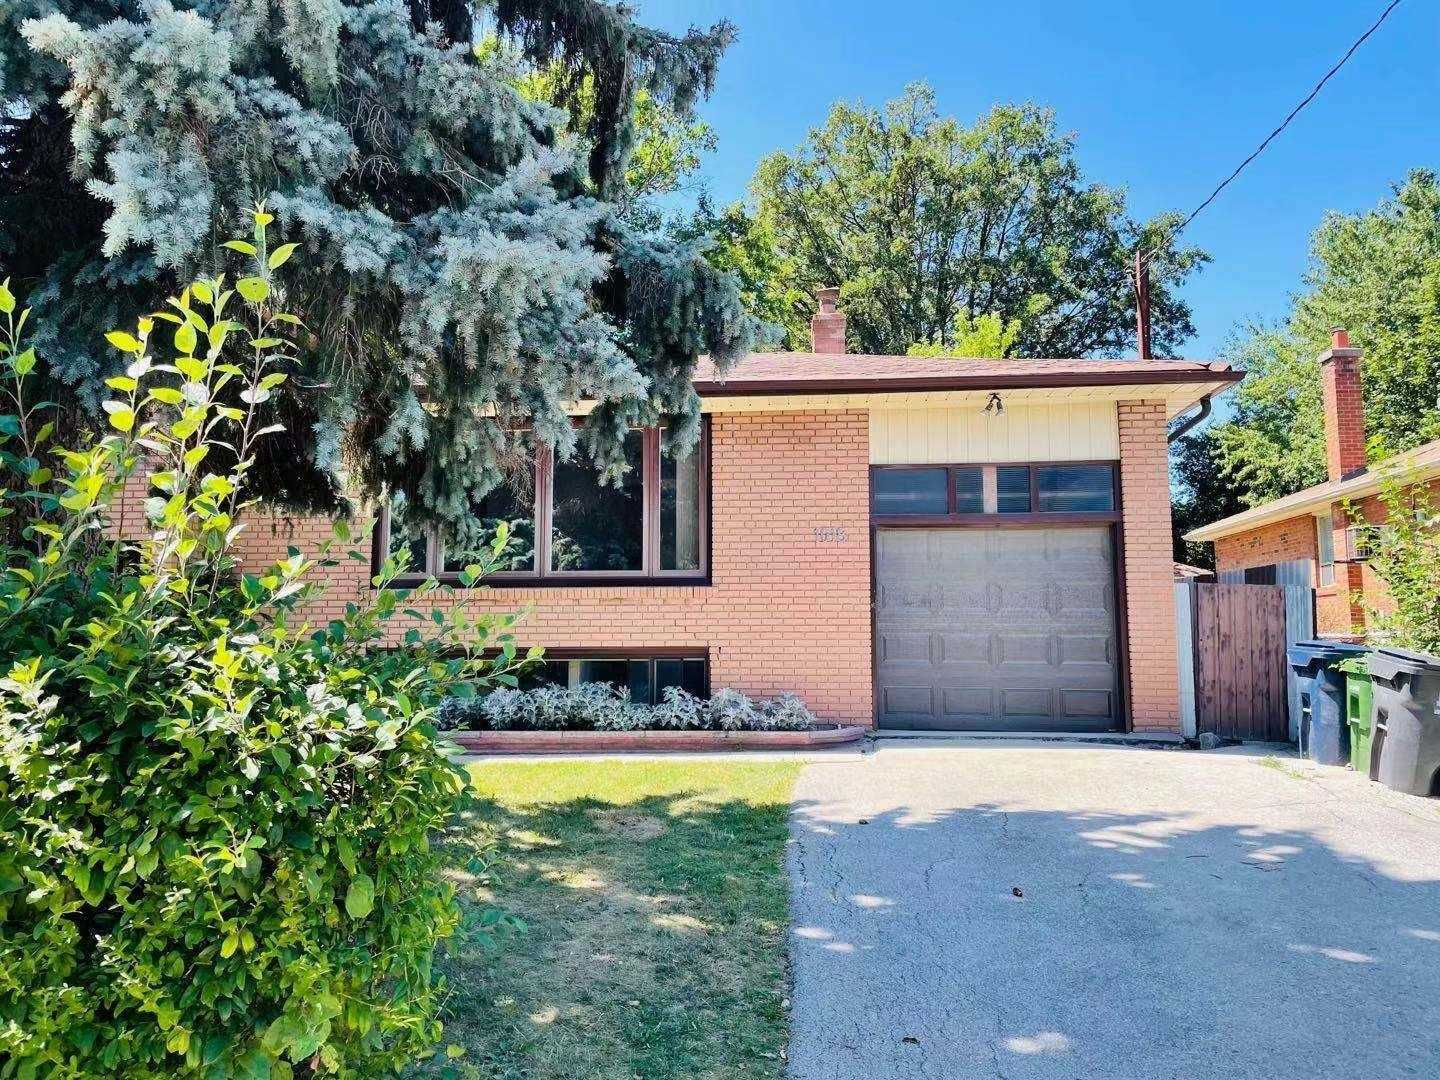 Detached house For Lease In Toronto - 1018B Willowdale Ave, Toronto, Ontario, Canada M2M3E1 , 1 Bedroom Bedrooms, ,1 BathroomBathrooms,Detached,For Lease,Willowdale